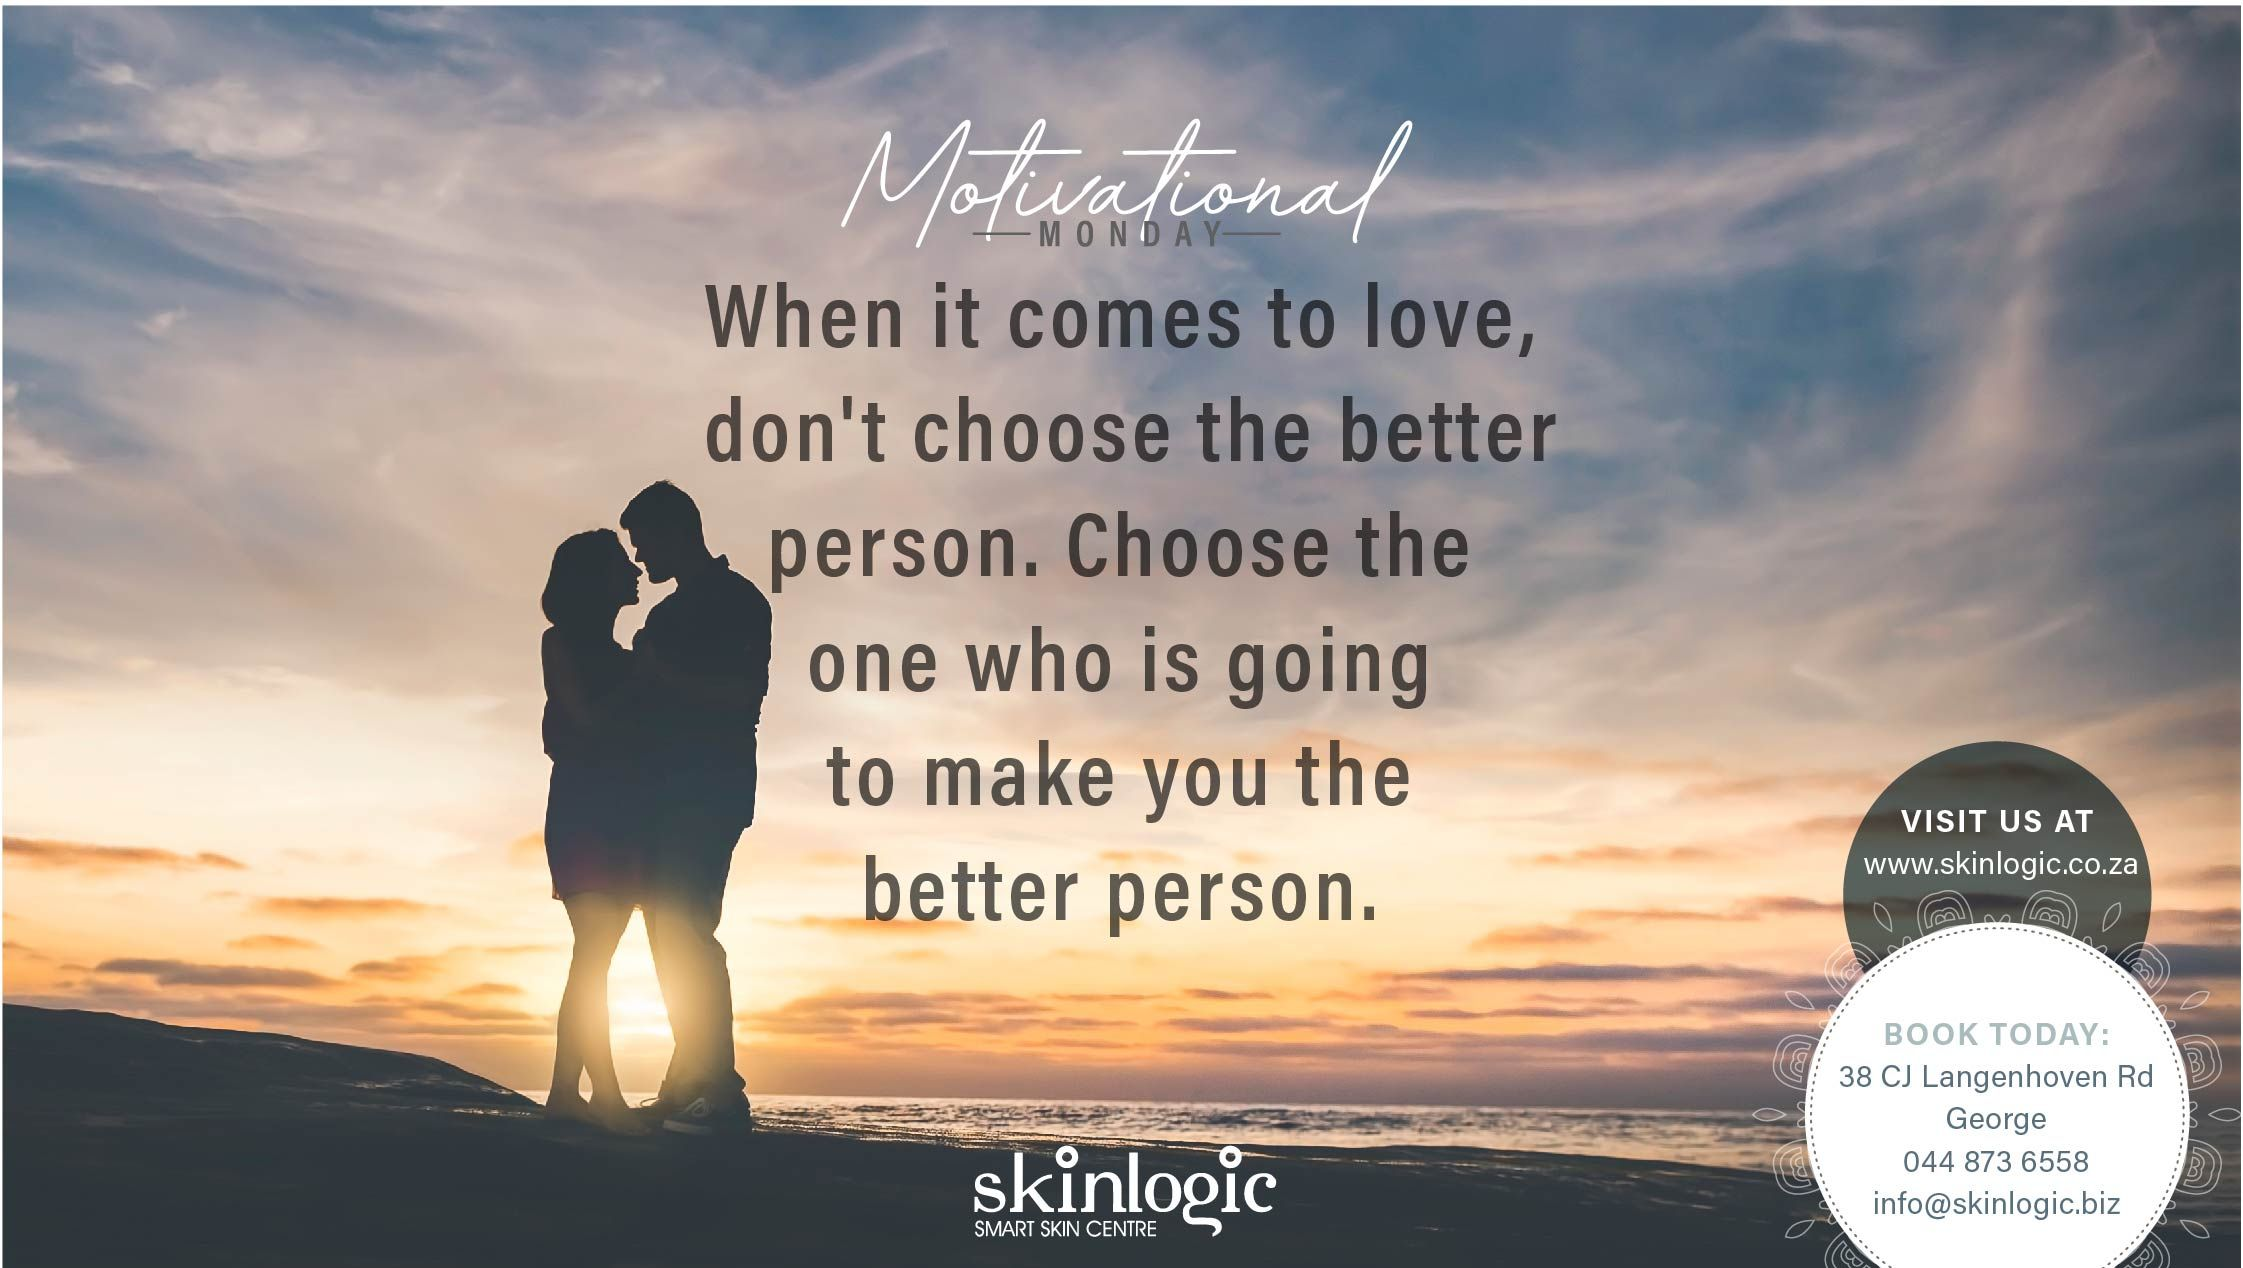 When it comes to love, don't choose the better person